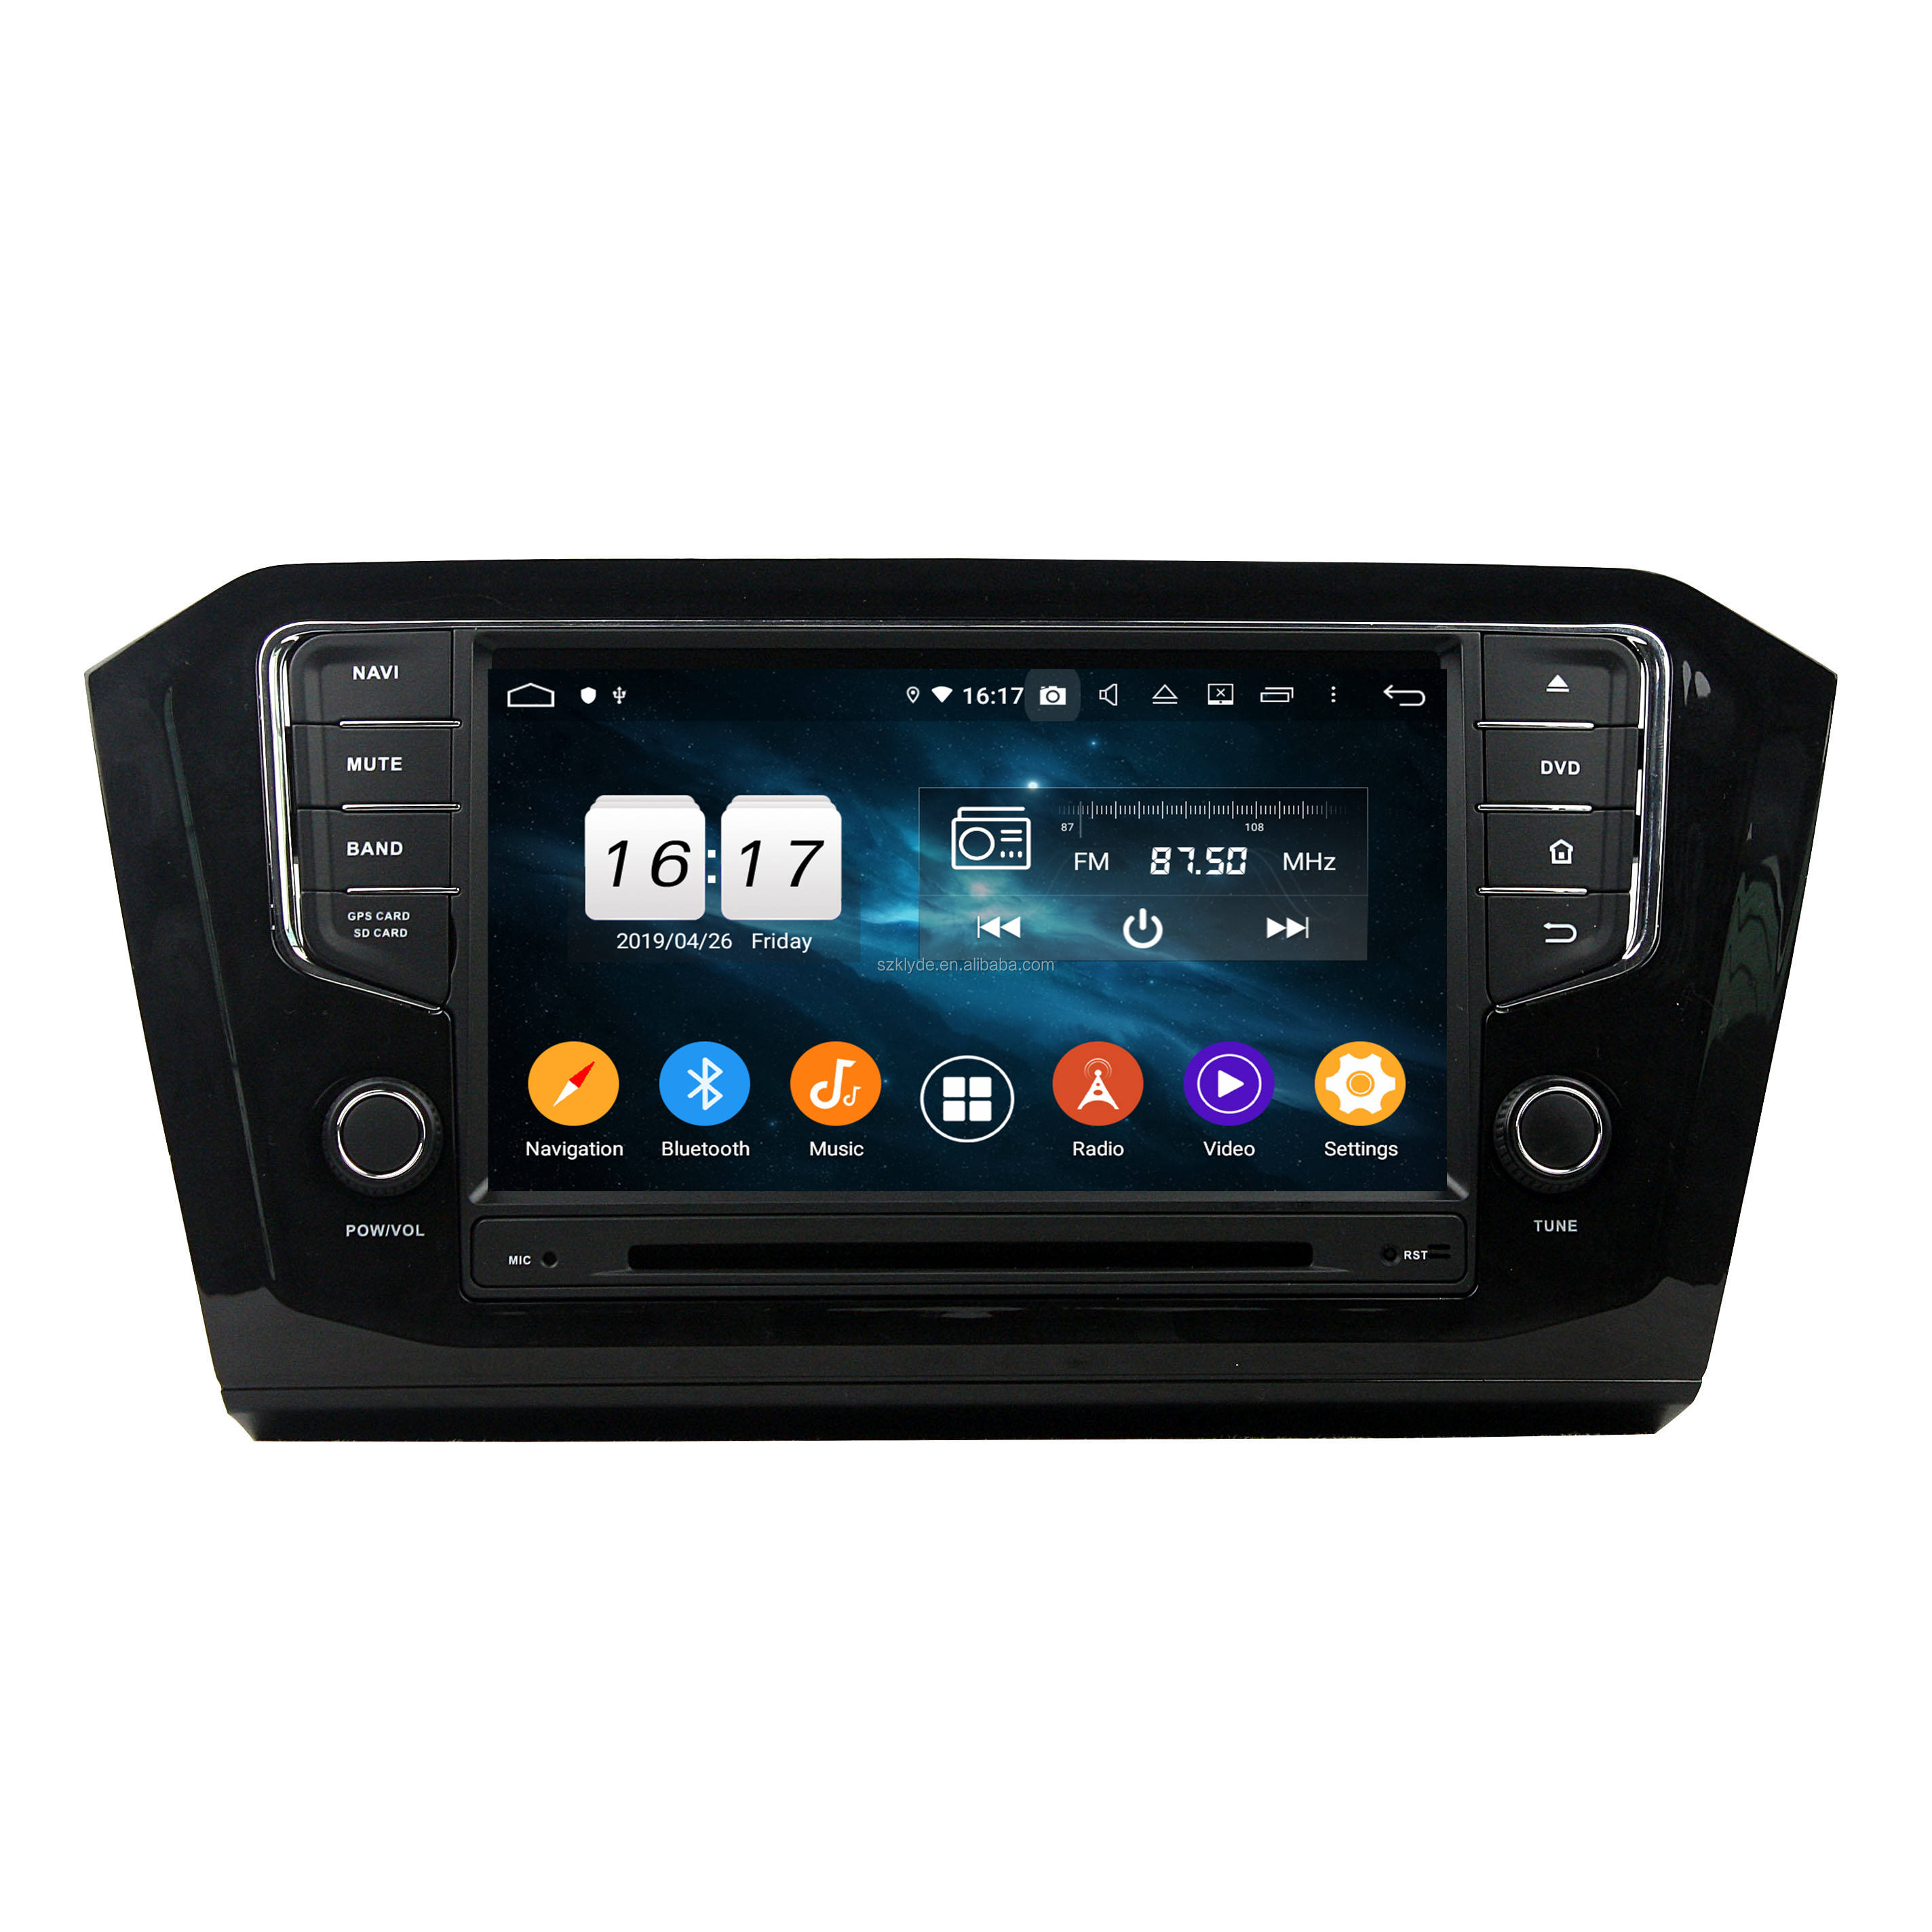 Klyde kd 8110 android 1 din android dash dvd player 4GB RAM GPS Navigation car audio system for PA SSAT 2015